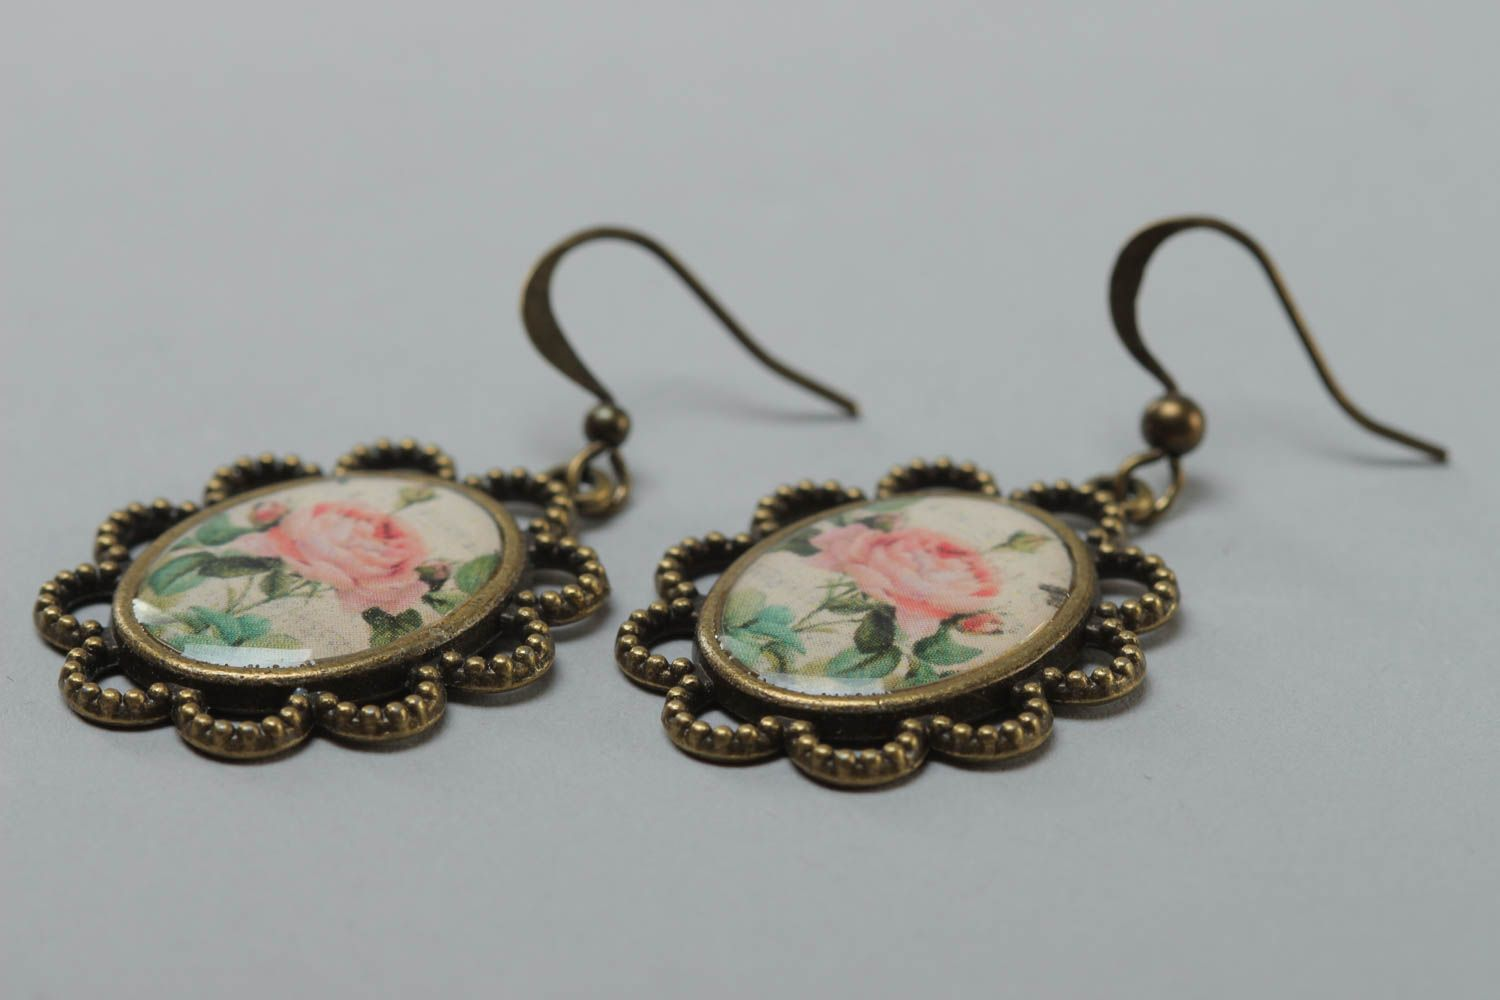 Women's beautiful handmade glass glaze oval earrings with roses photo 3